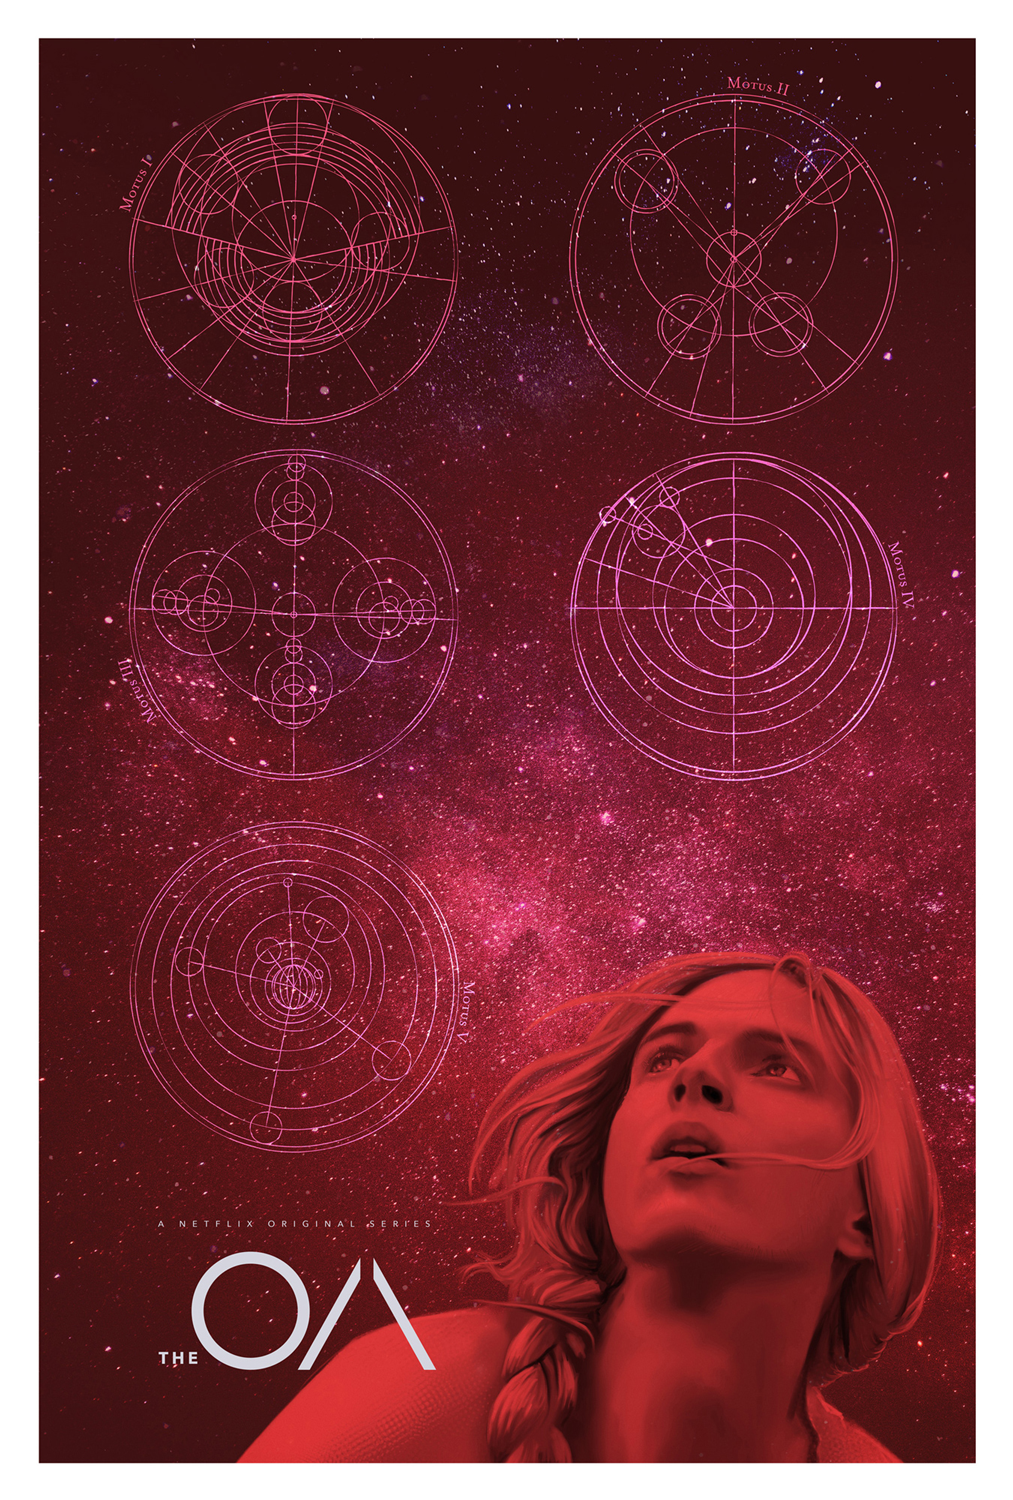 TheOA Space Variant NETFLIX MOVIE poster design by Mark Levy Art